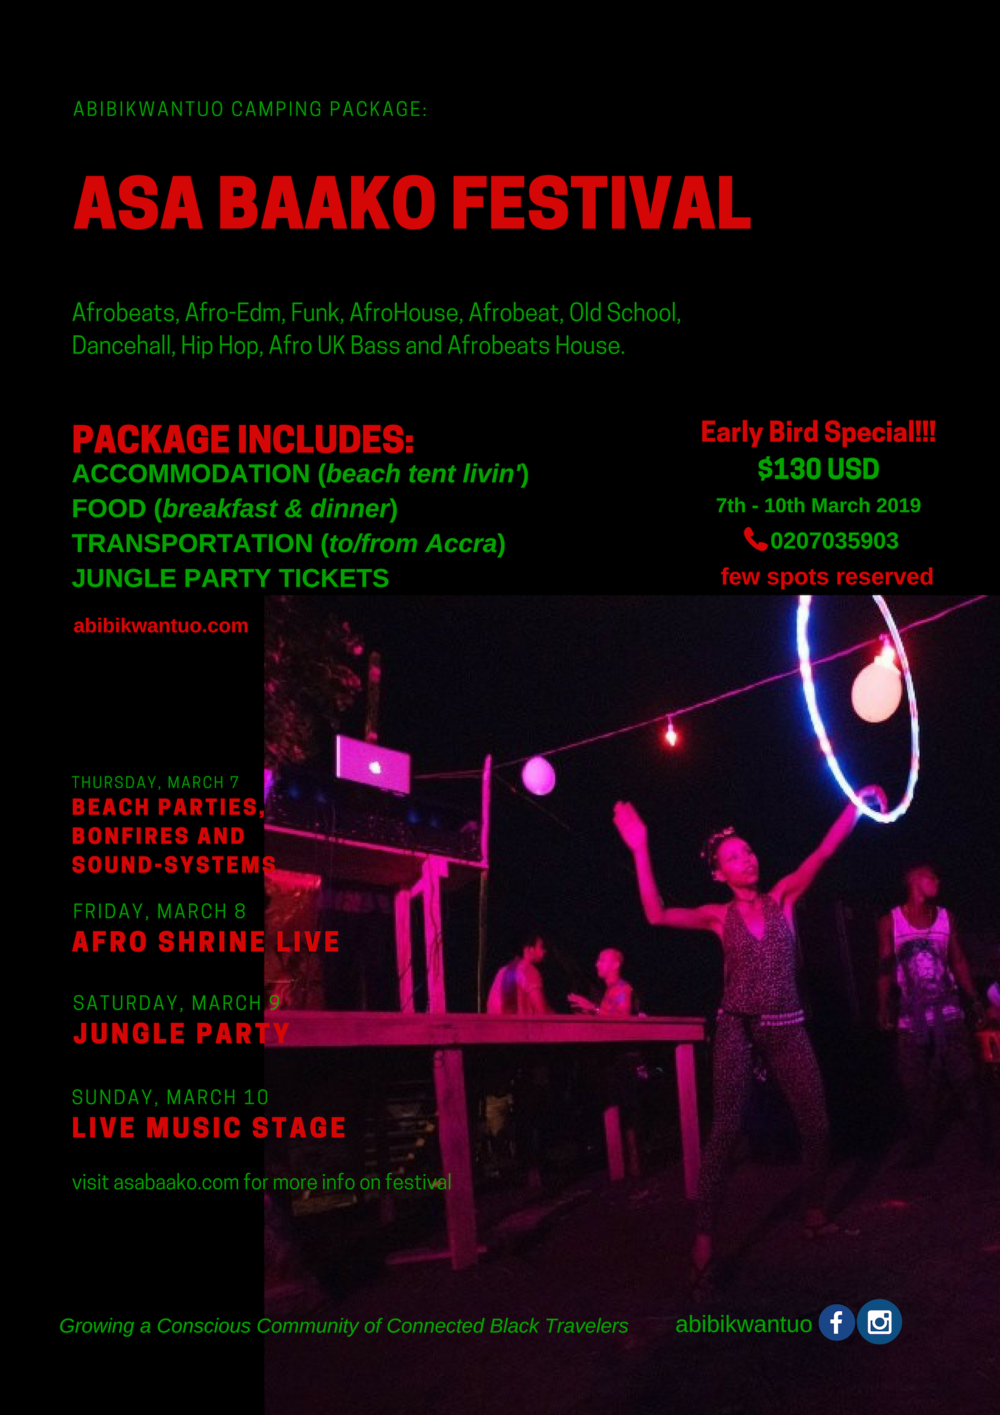 """Party with a Purpose - """"We've all been waiting for Asa Baako - a truly magical festival experience that has its own unique style rooted in Ghanaian culture, bringing everyone together into one dance!"""